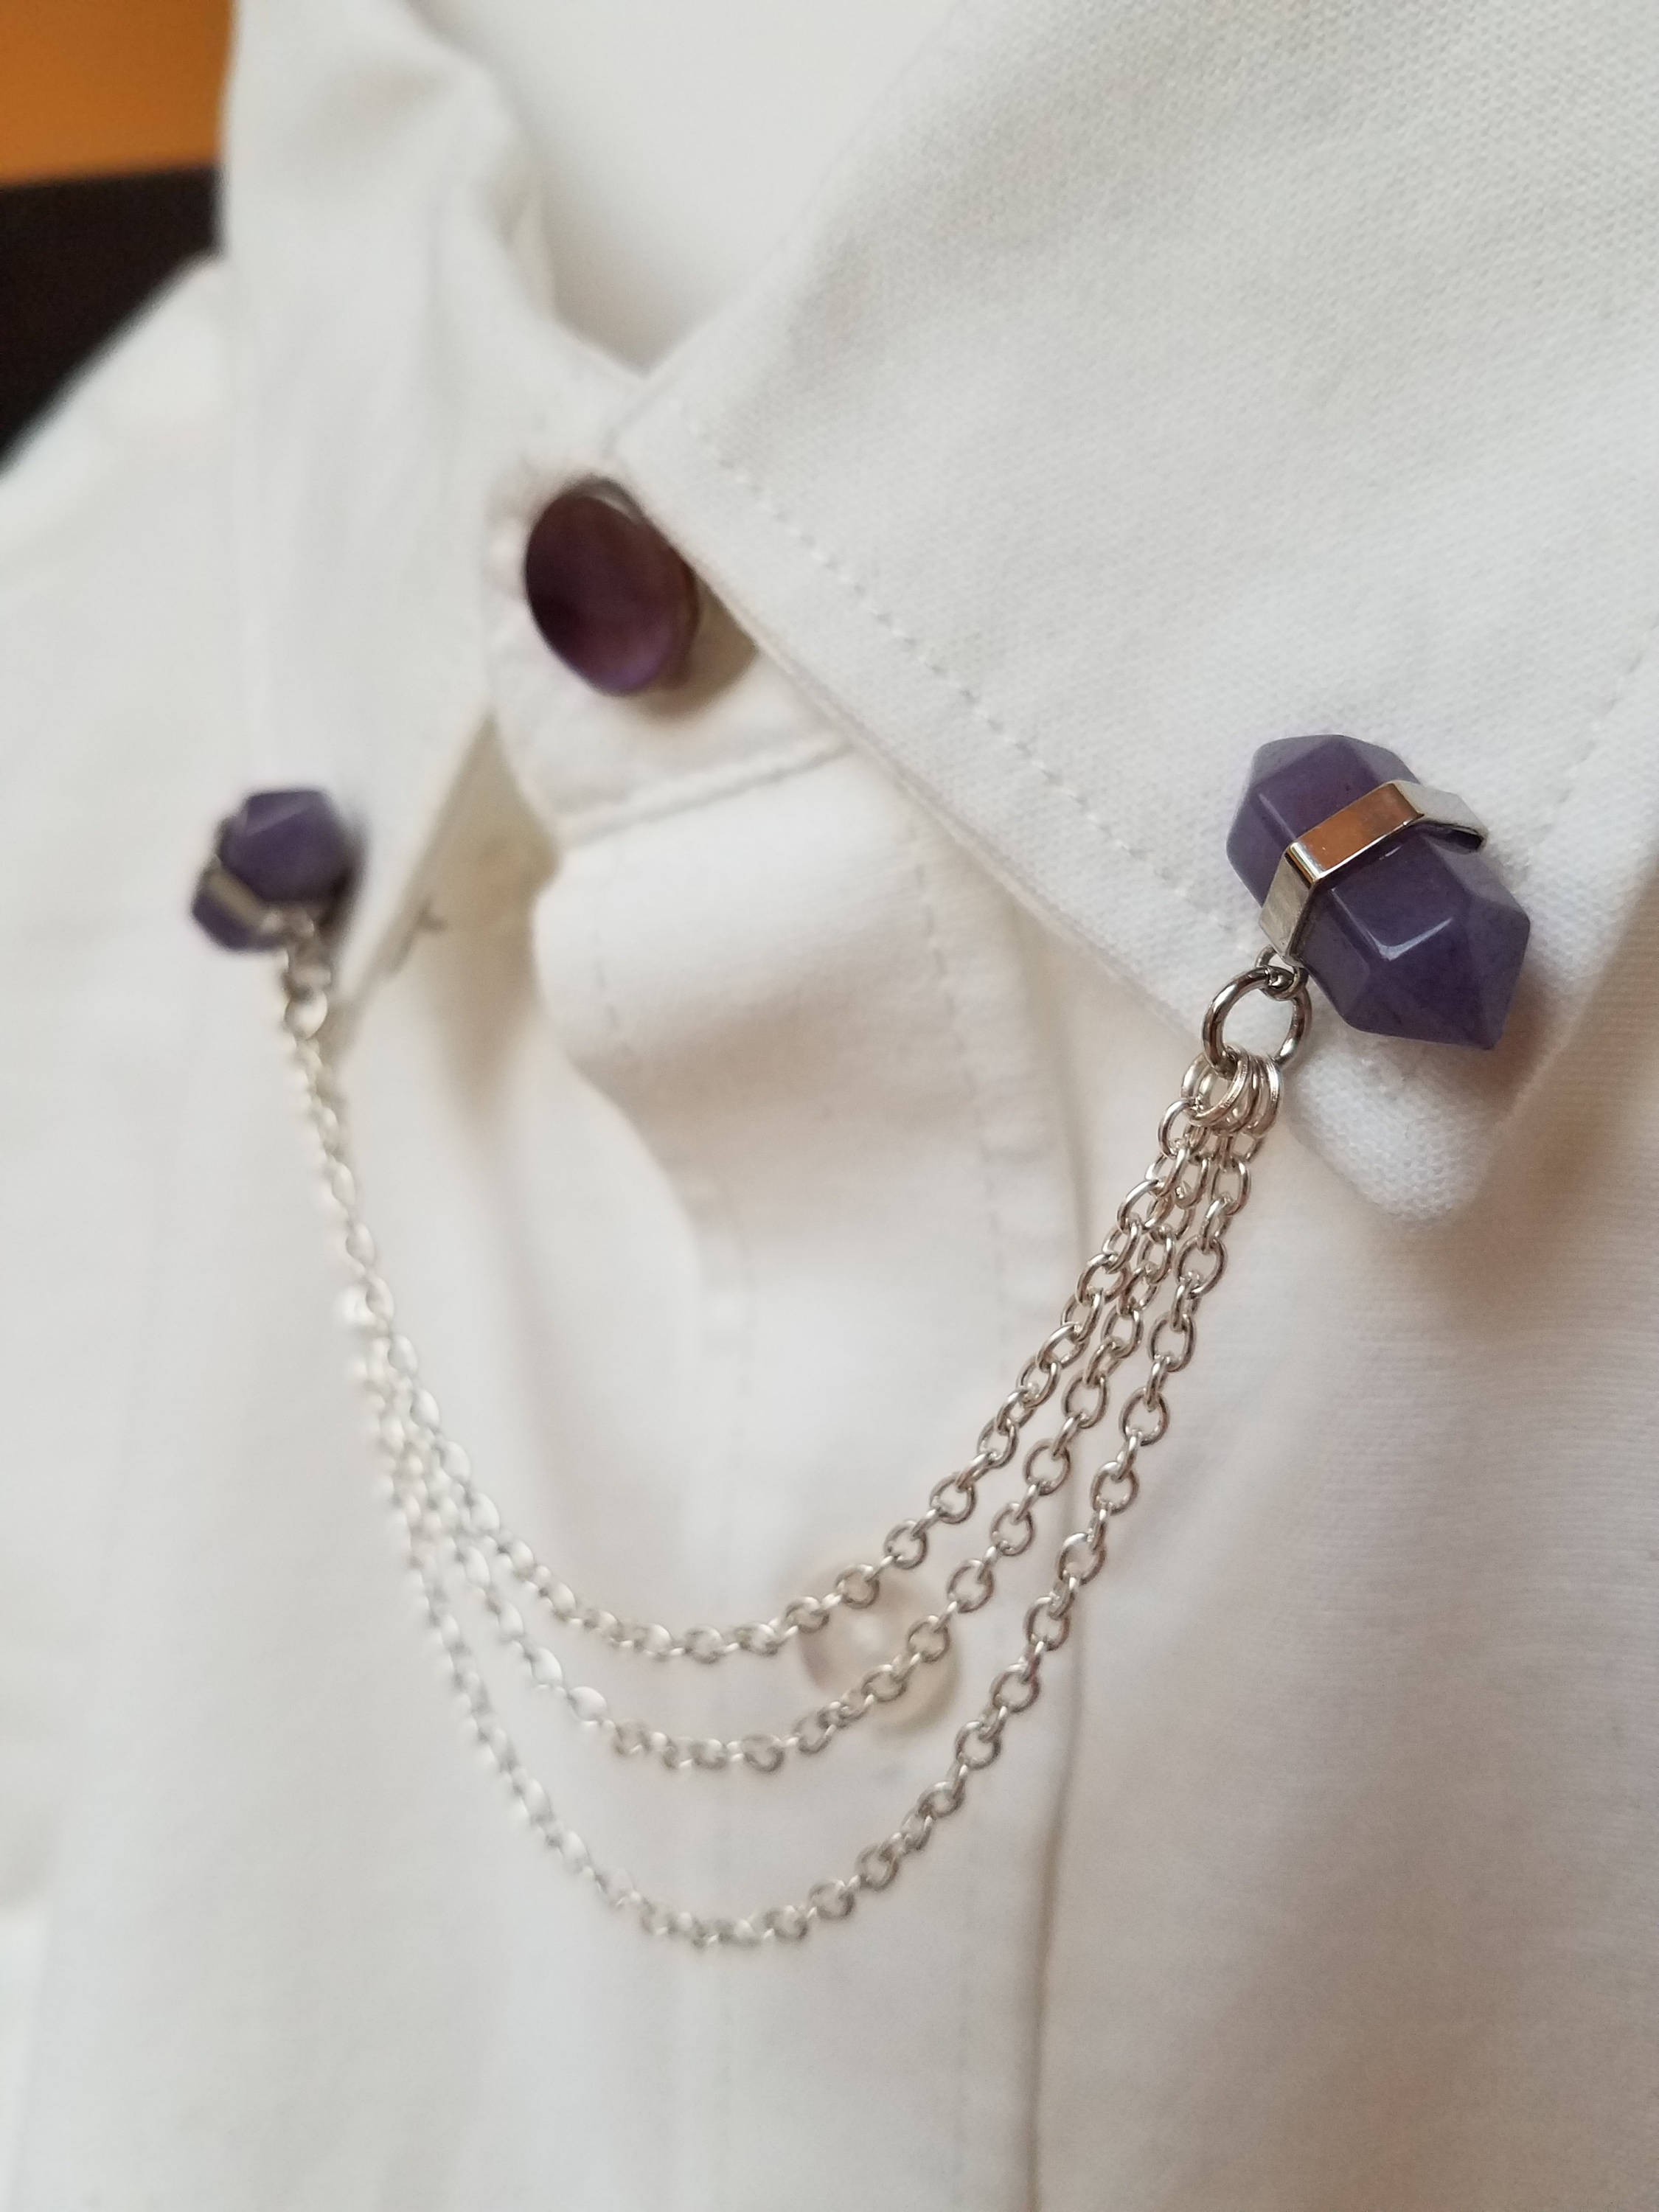 Double Pointed Amethyst Collar Pin Set, $25.00 at Field Hill on Etsy